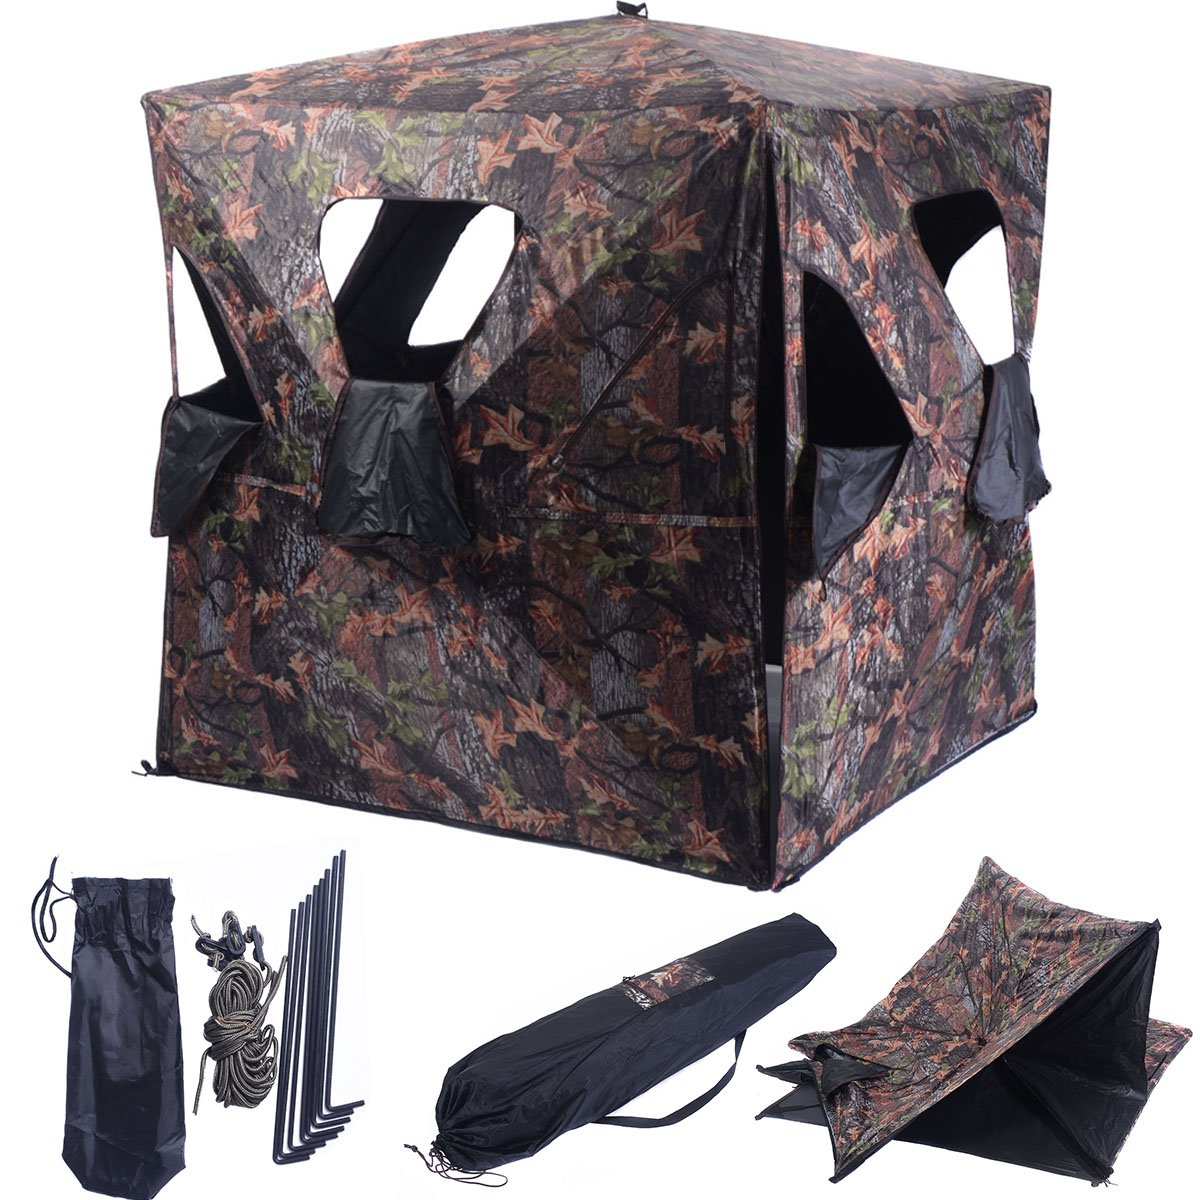 camo ambush free up blinds burly ups bigcamo hunting shipping com blind ground pop